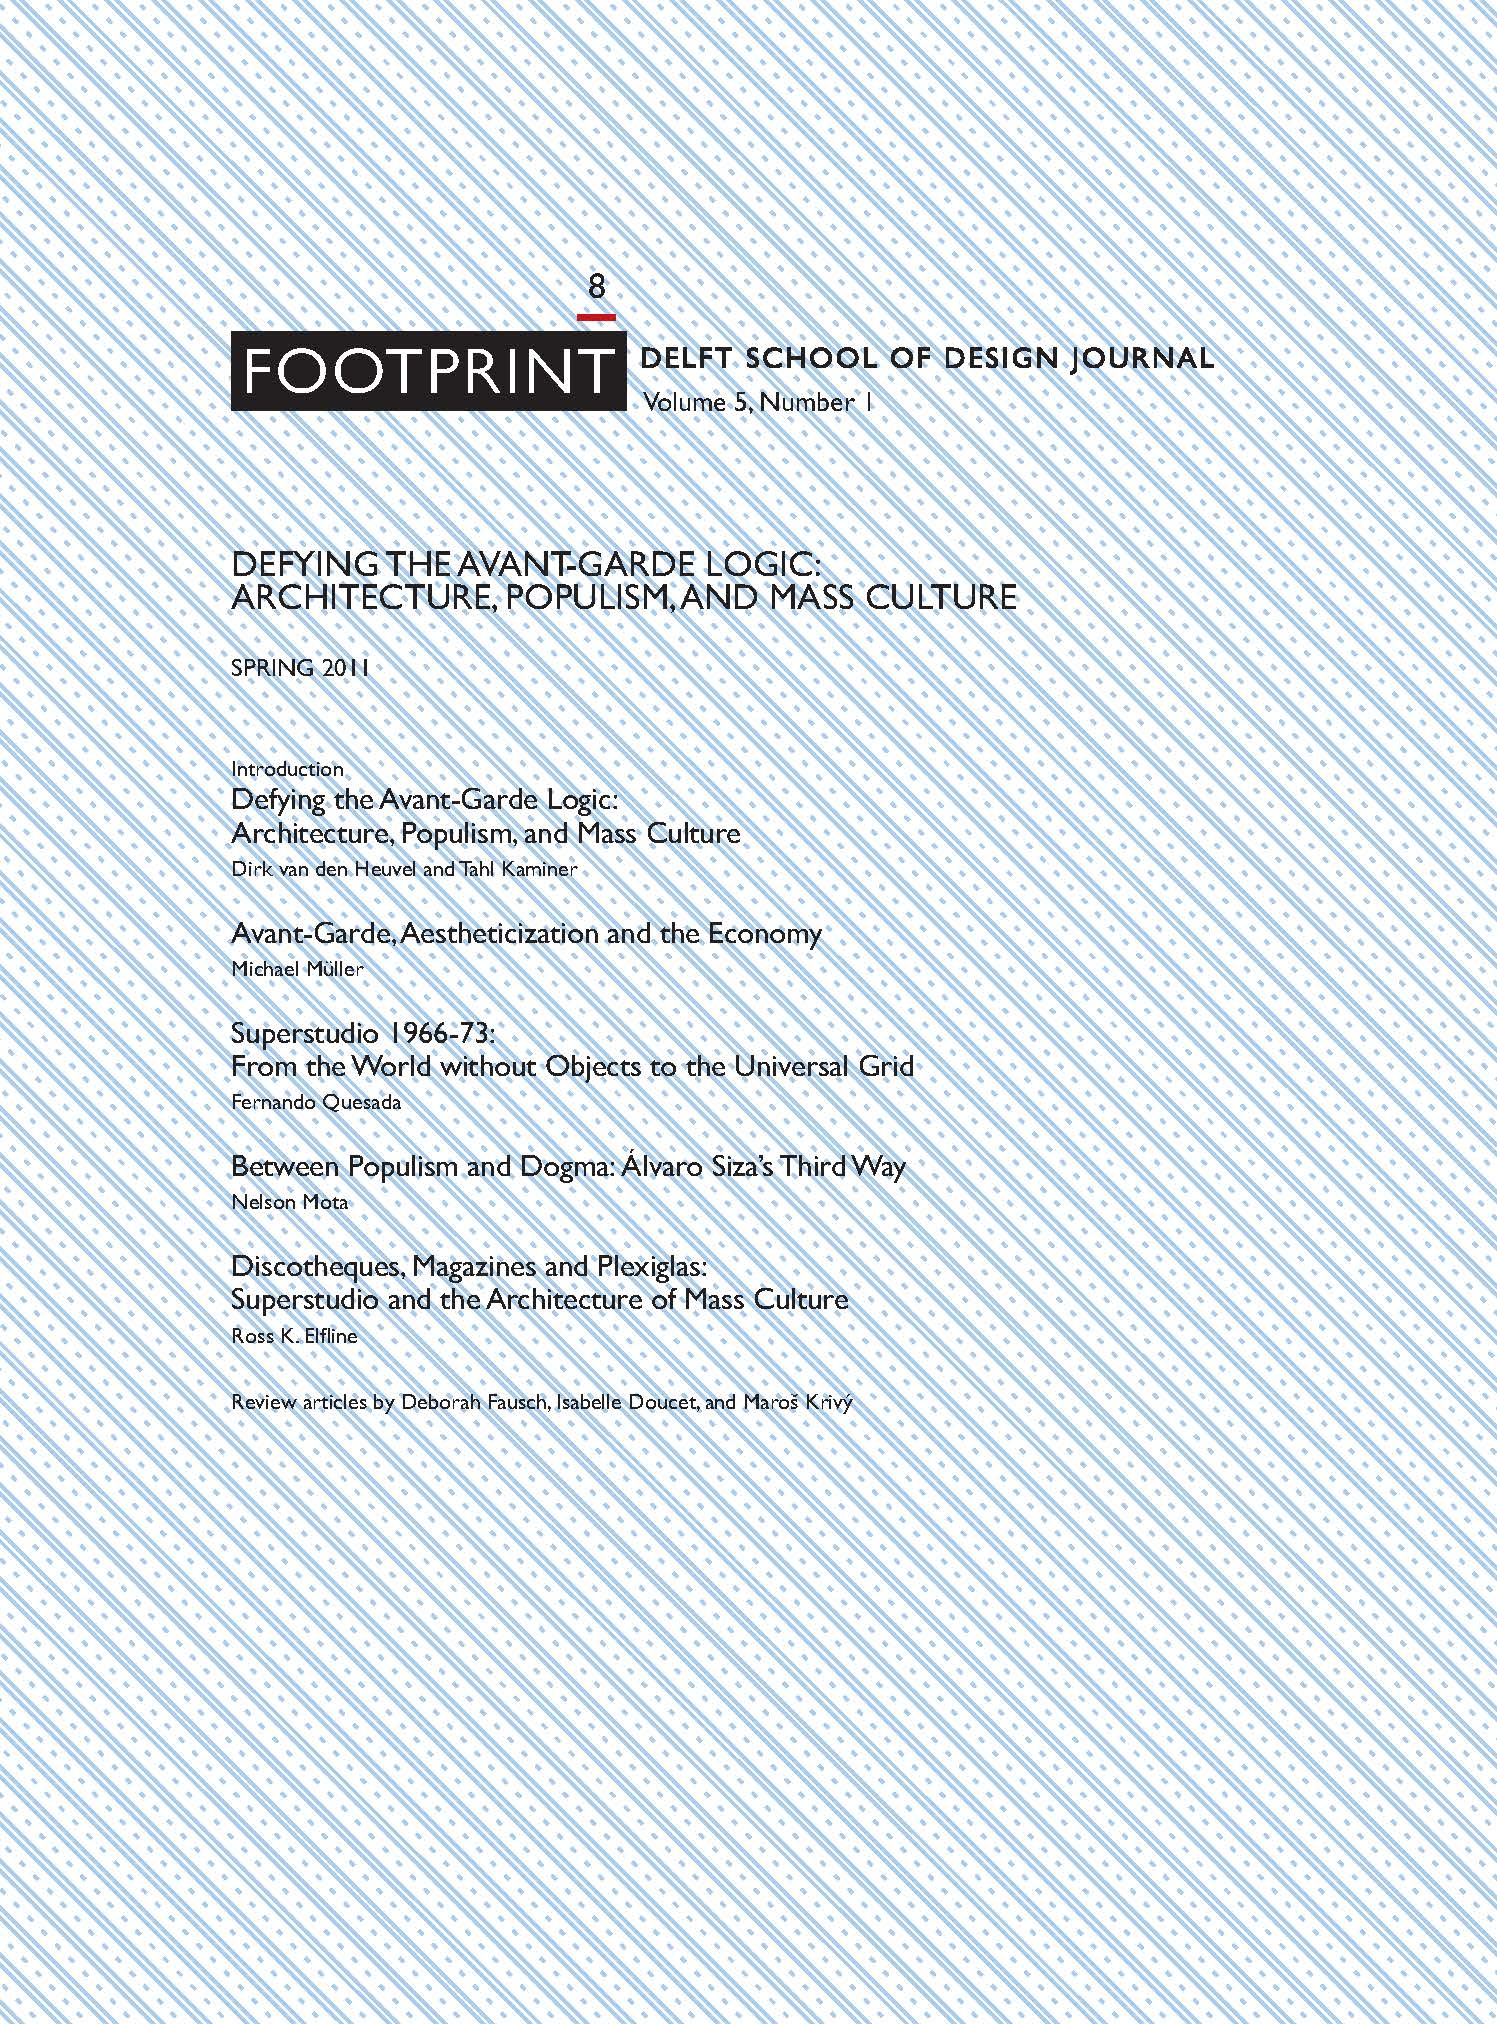 View Issue # 8 | Spring 2011 | Defying the Avant-Garde Logic: Architecture, Populism, and Mass Culture